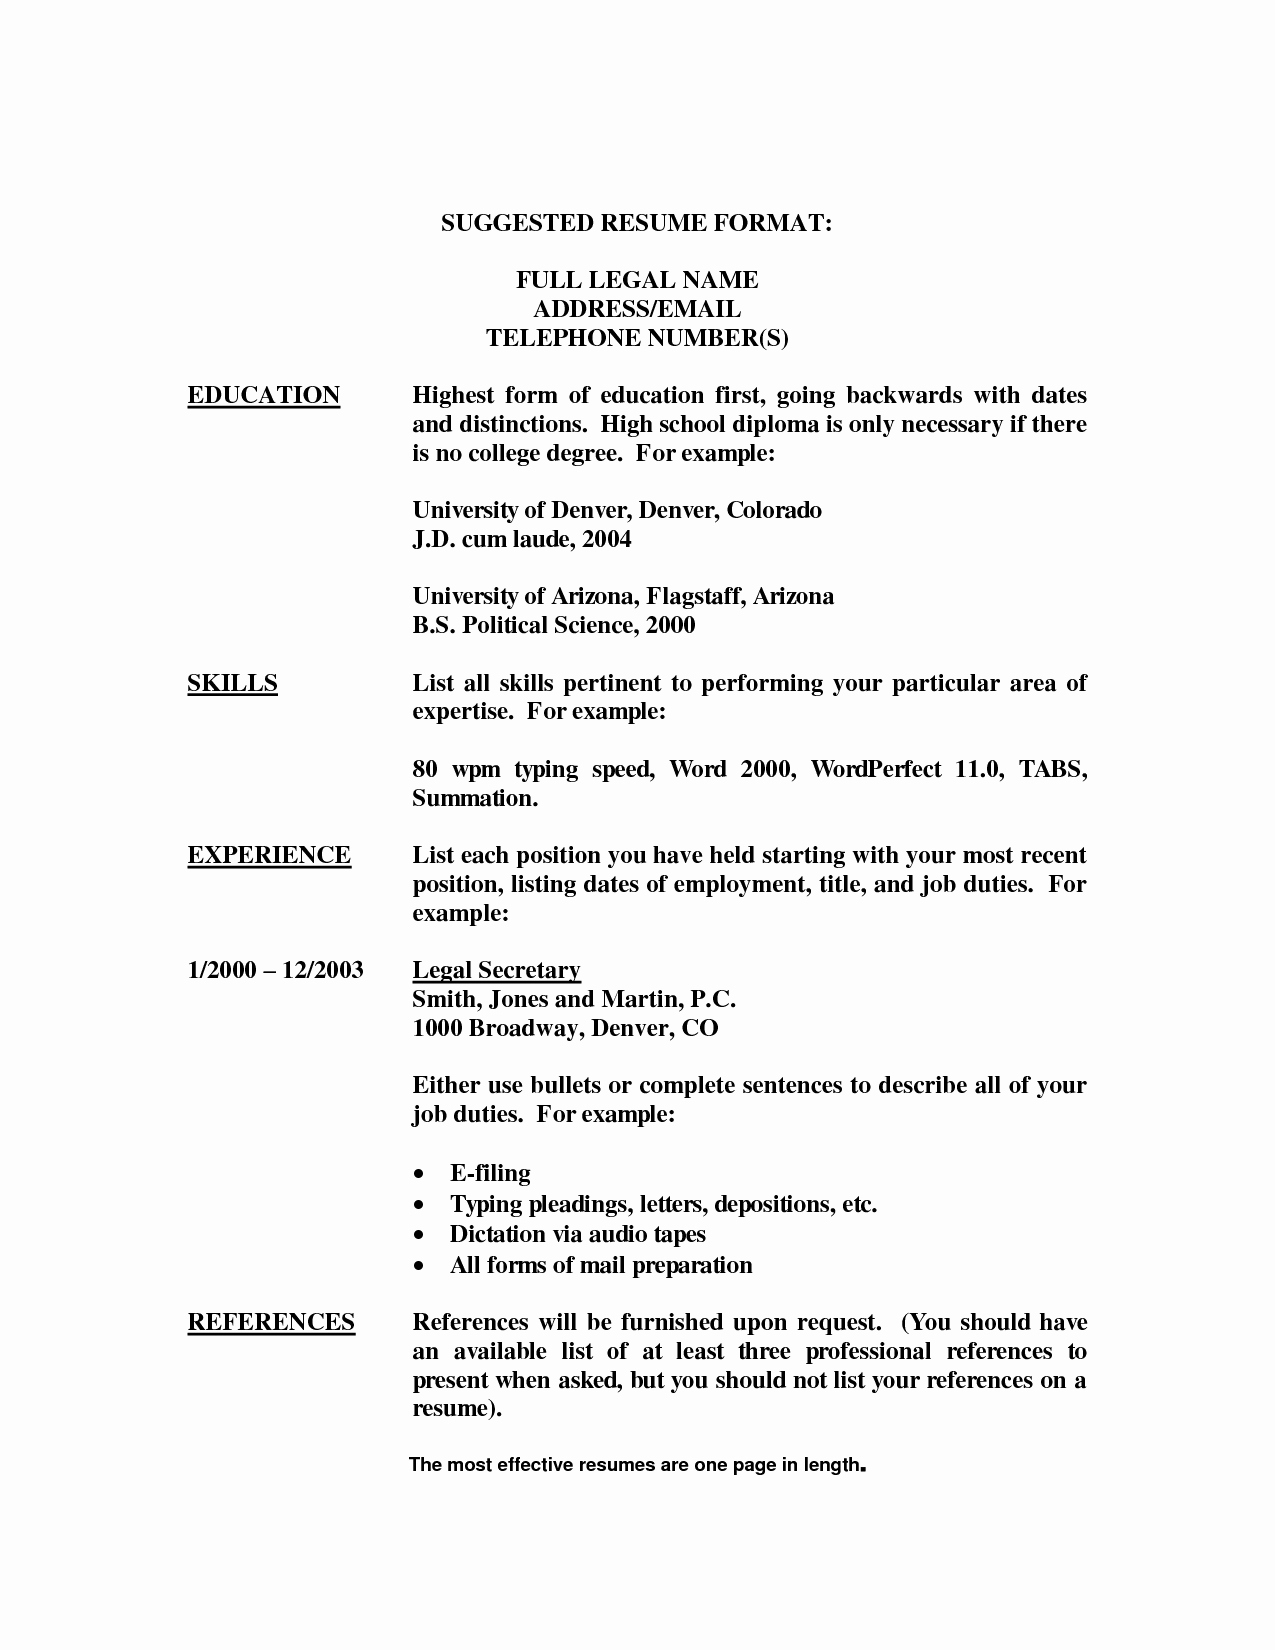 School Secretary Cover Letter Template - 20 School Secretary Cover Letter